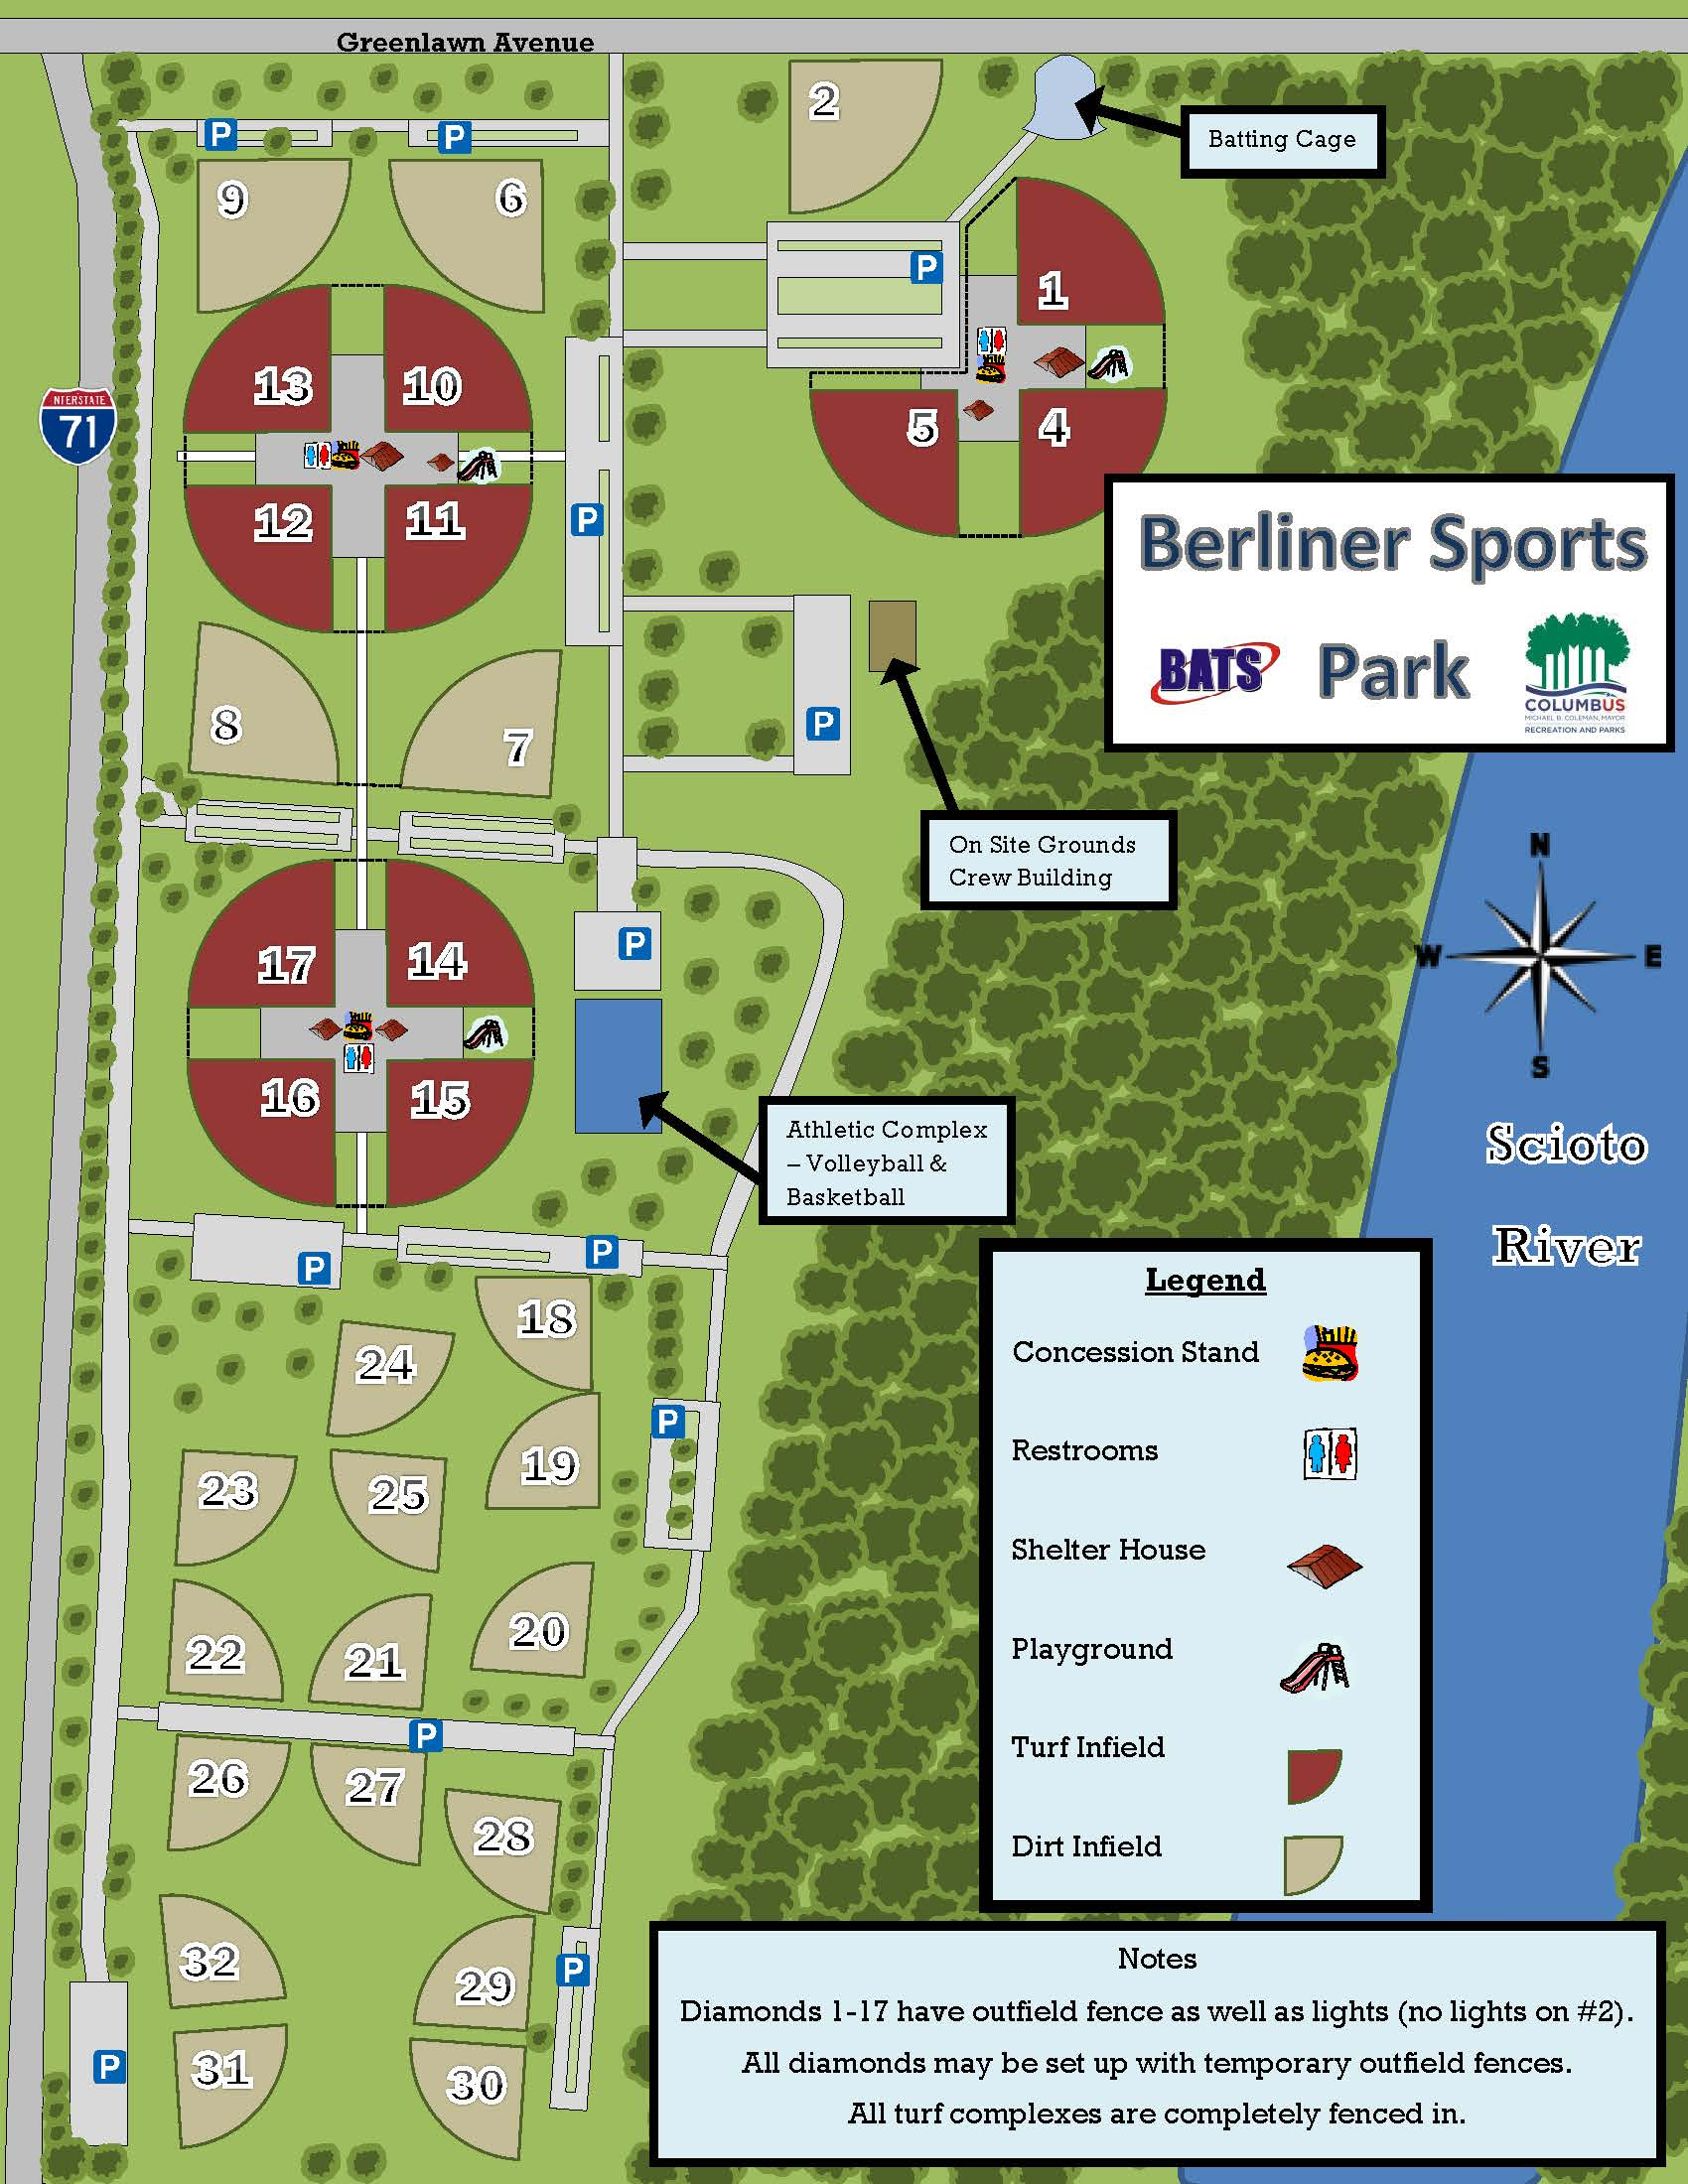 Berliner Park Map Berliner Park is the Largest Softball Complex in the U.S. Berliner Park Map